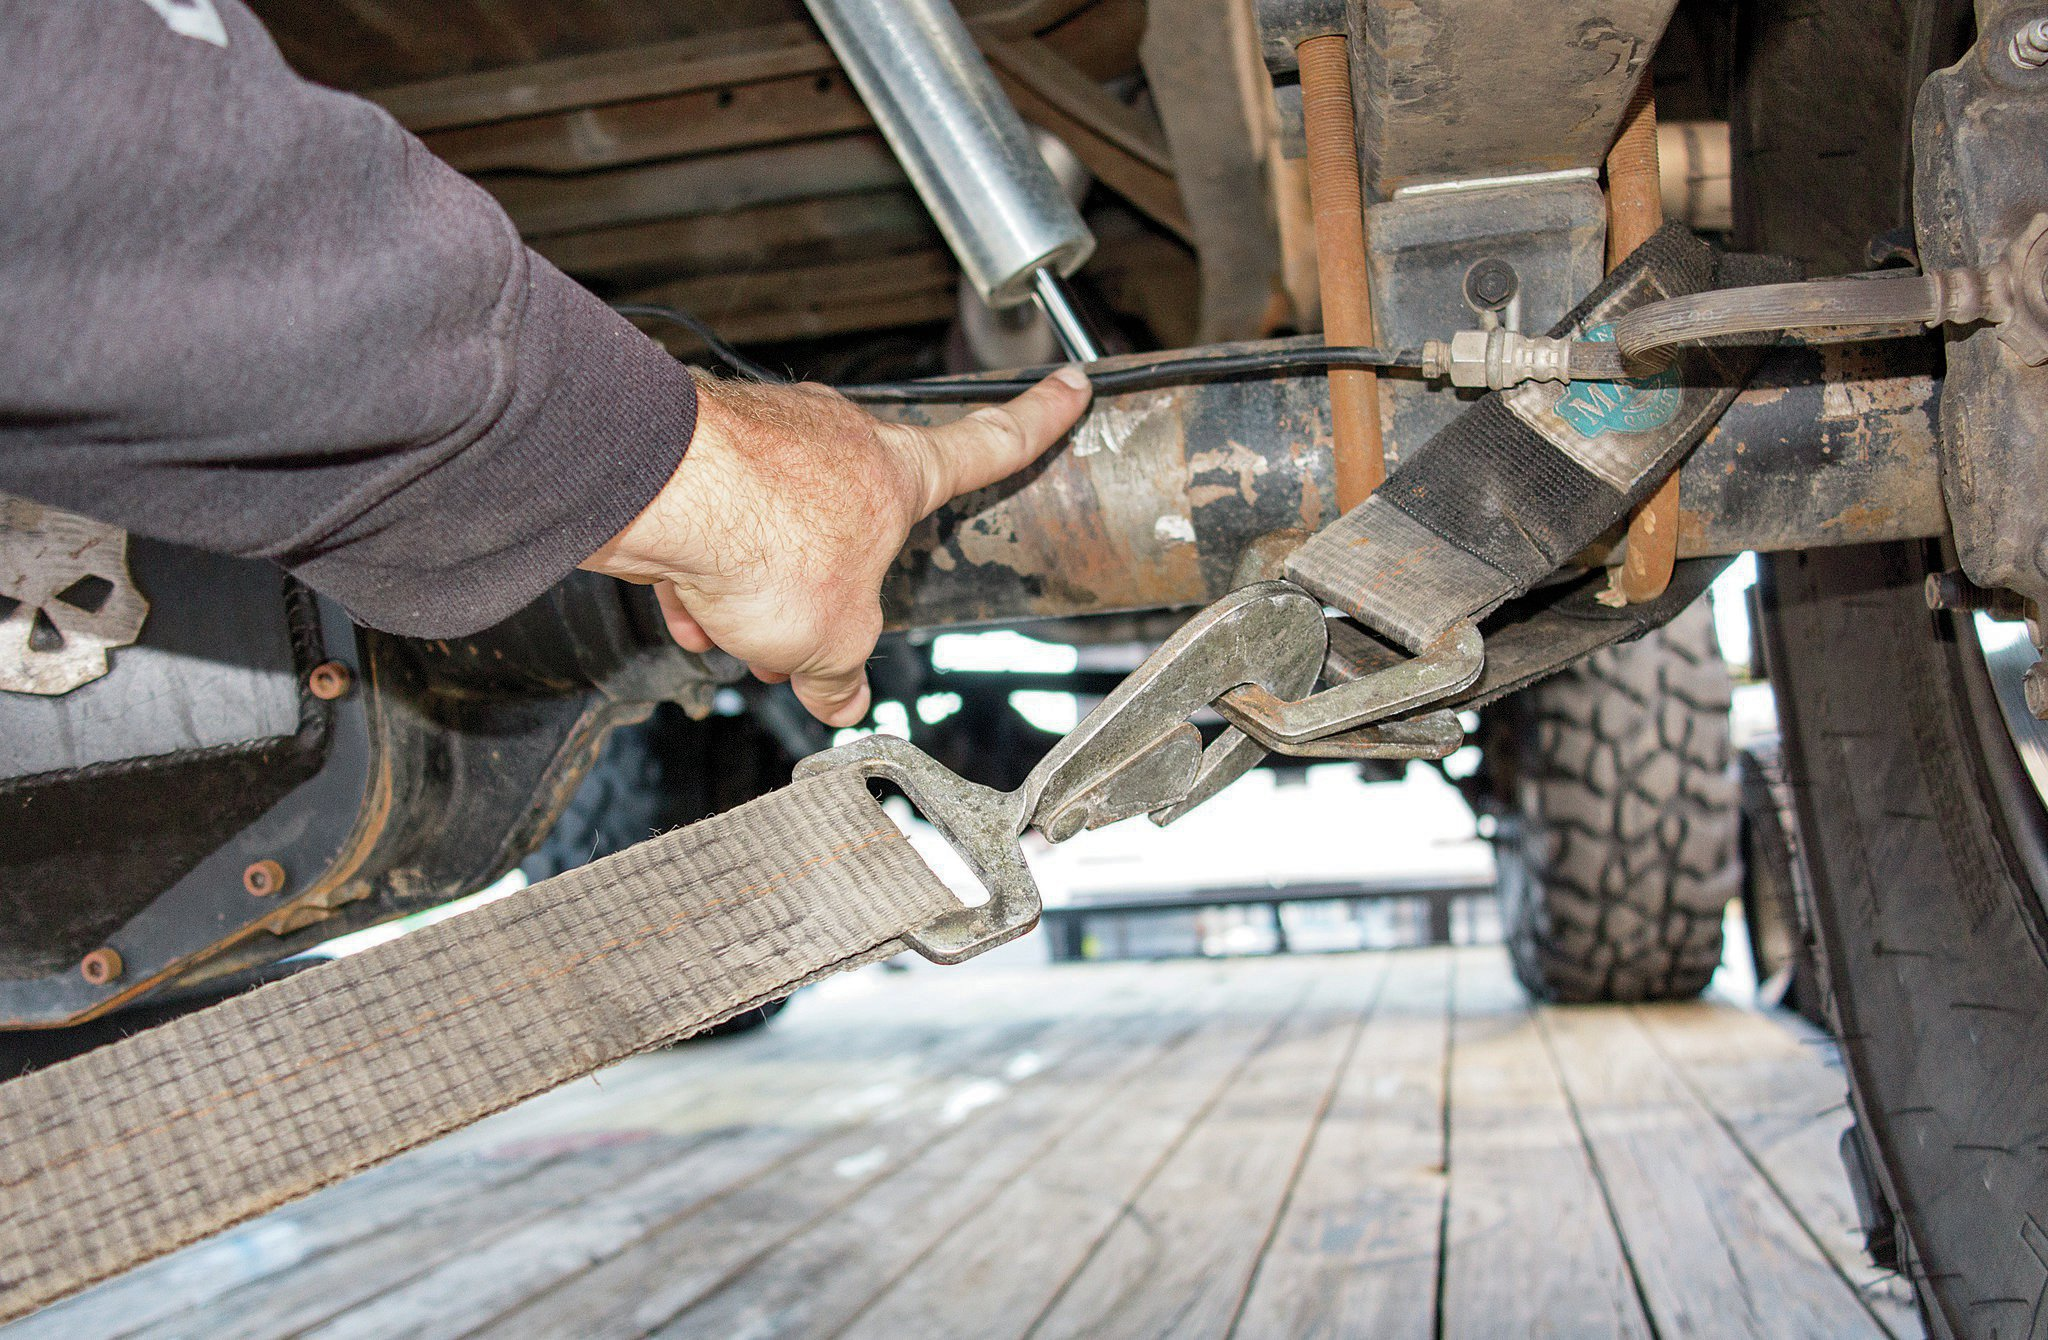 tow straps clearing brake lines